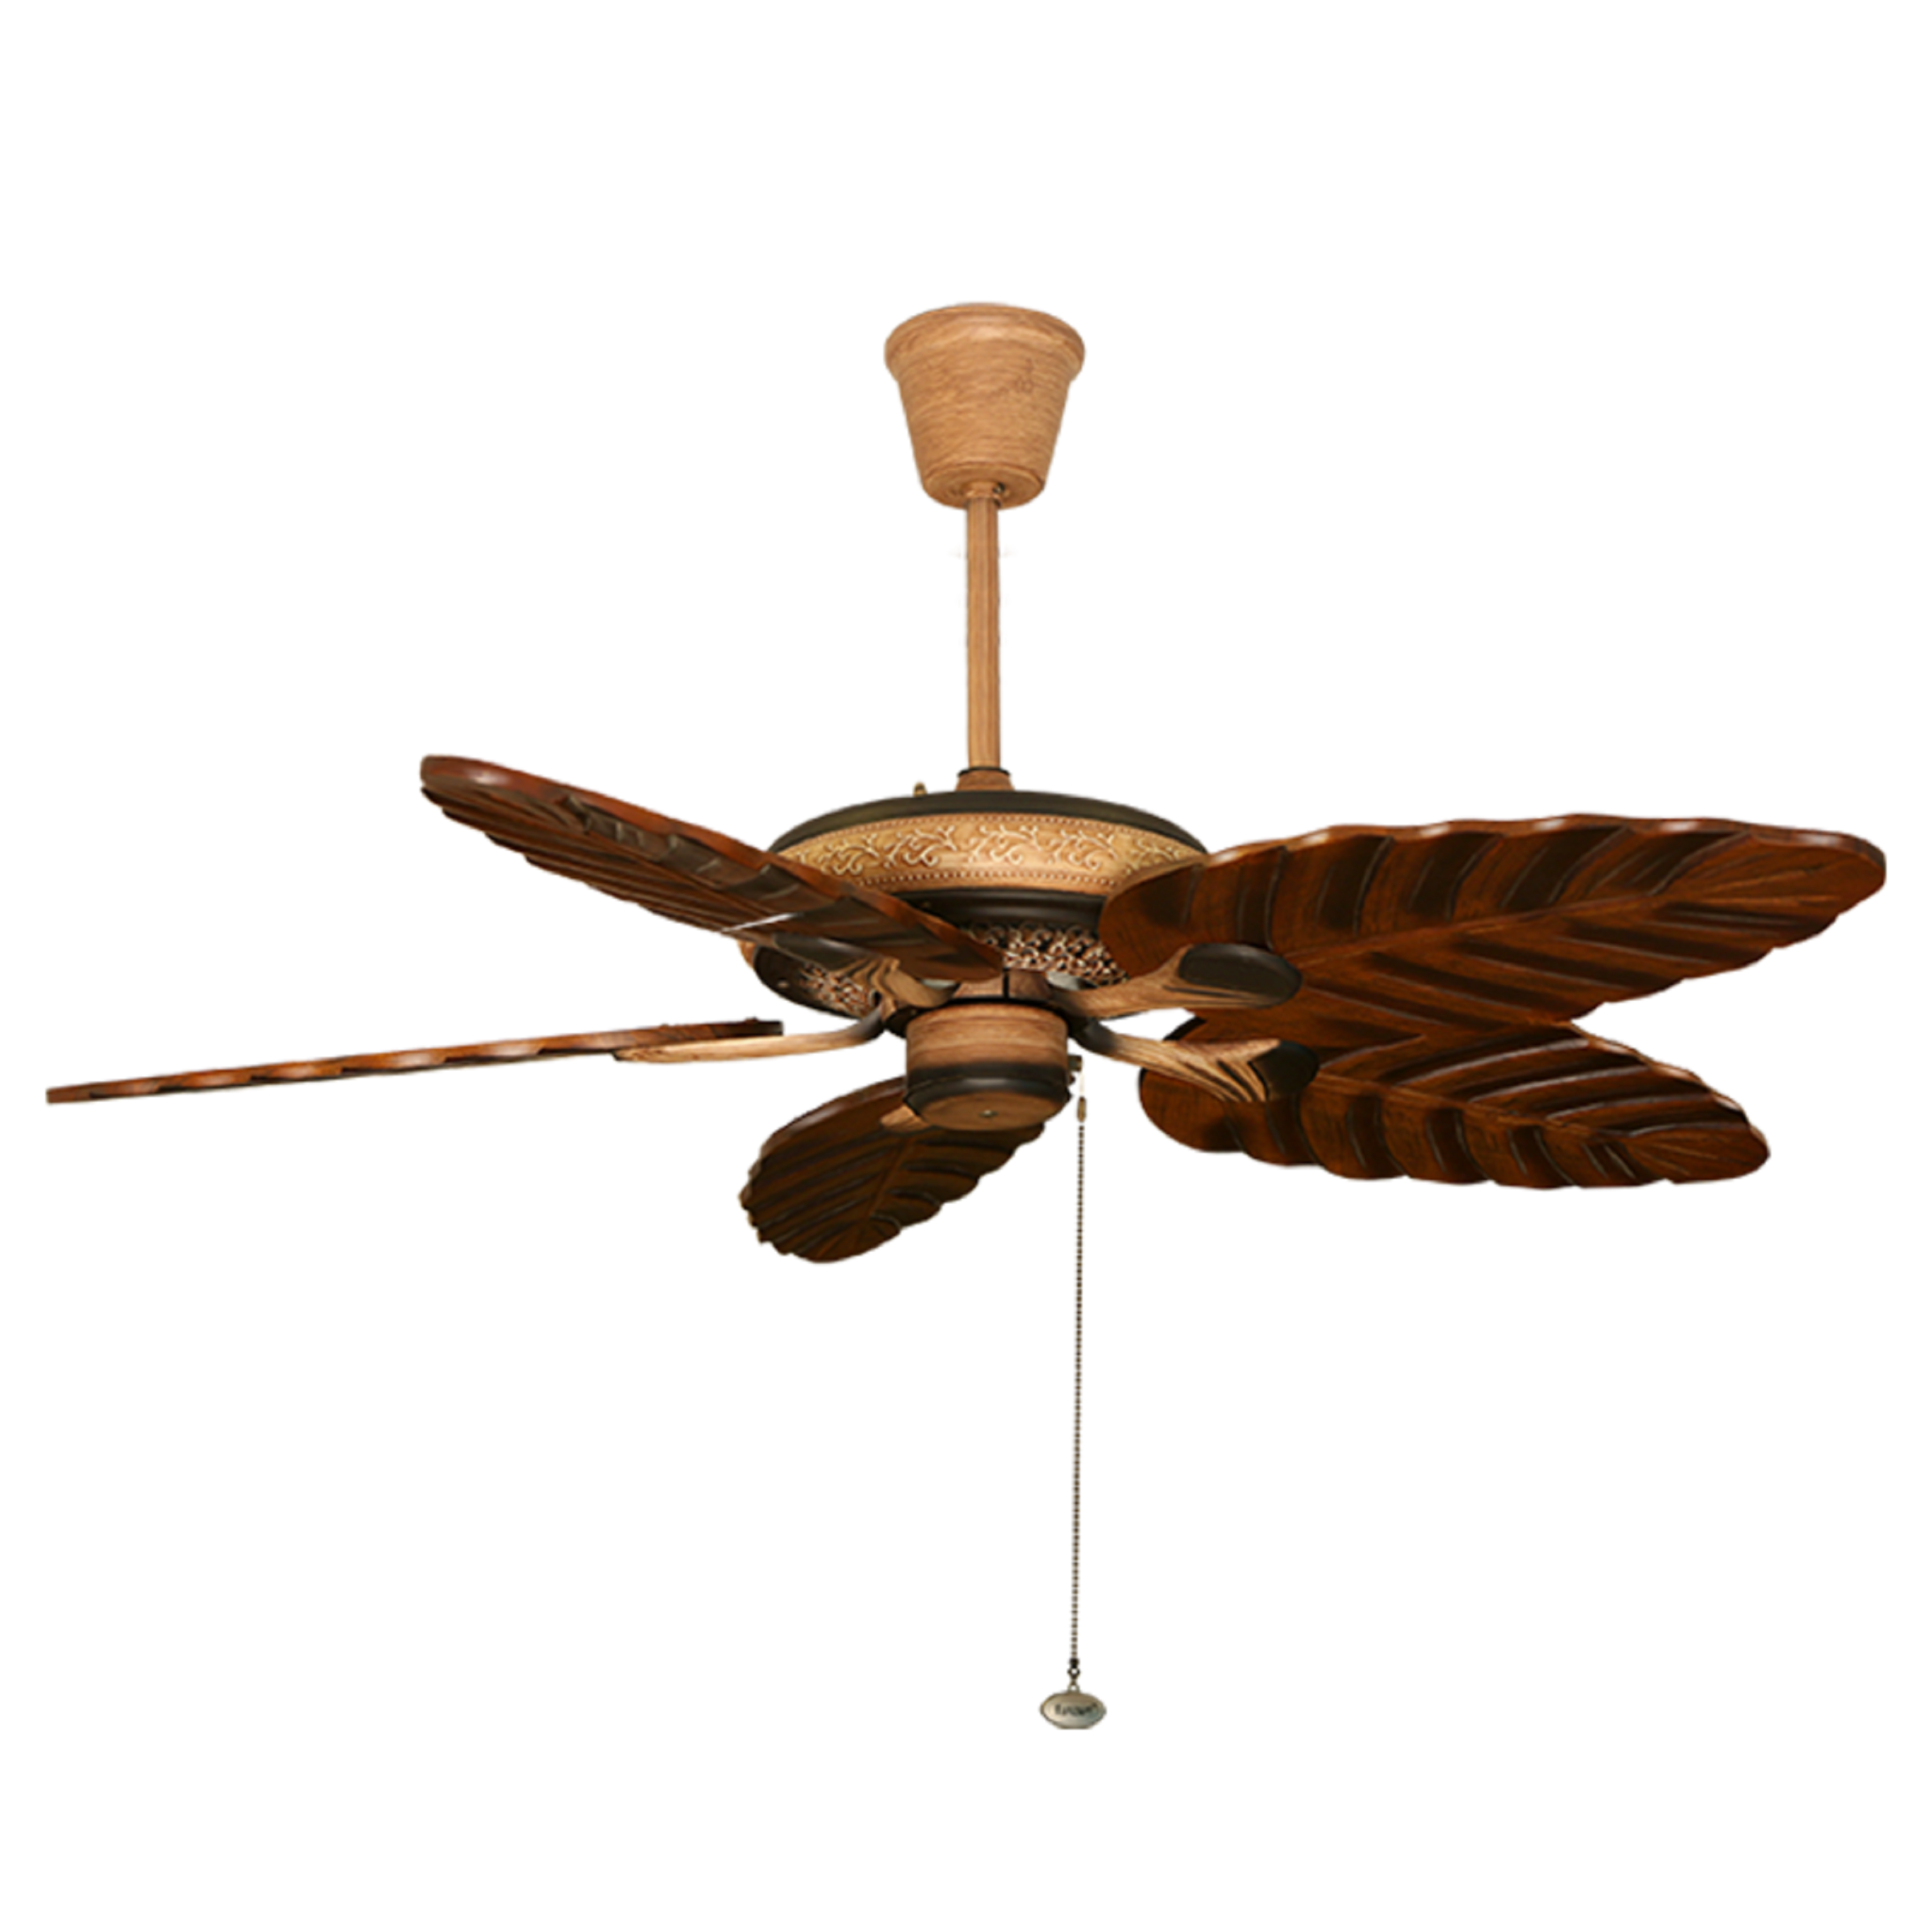 Fanzart The Basil ceiling fan (1)